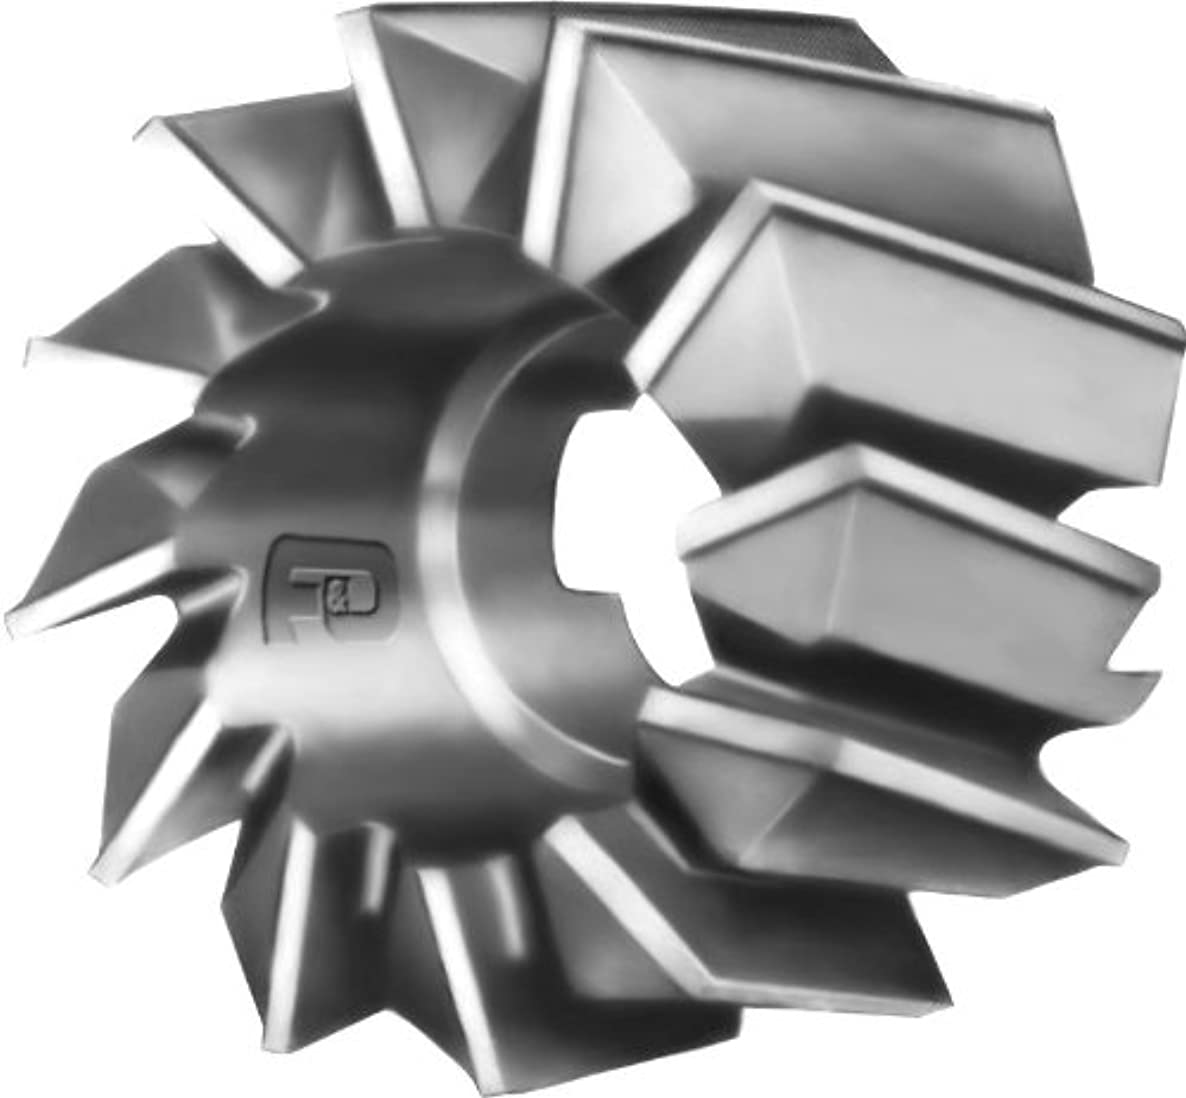 F&D Tool Company 14504-A1614R Shell End Mills for Steel, High Speed Steel, 1.75